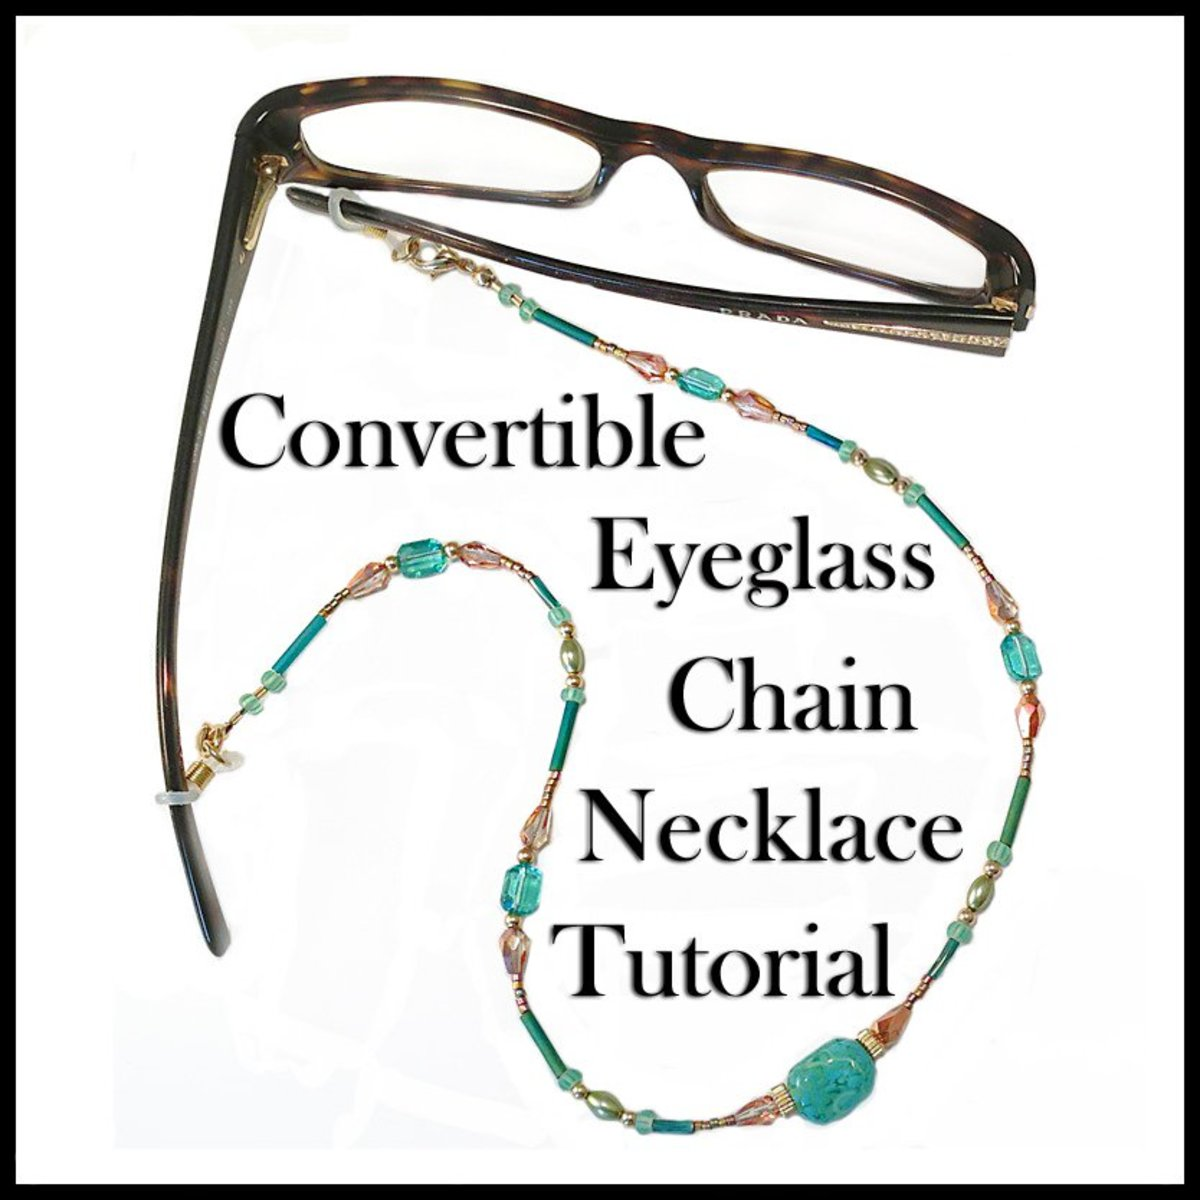 29418df442ad Make a Pretty Beaded Eyeglass Holder That Converts to a Necklace ...